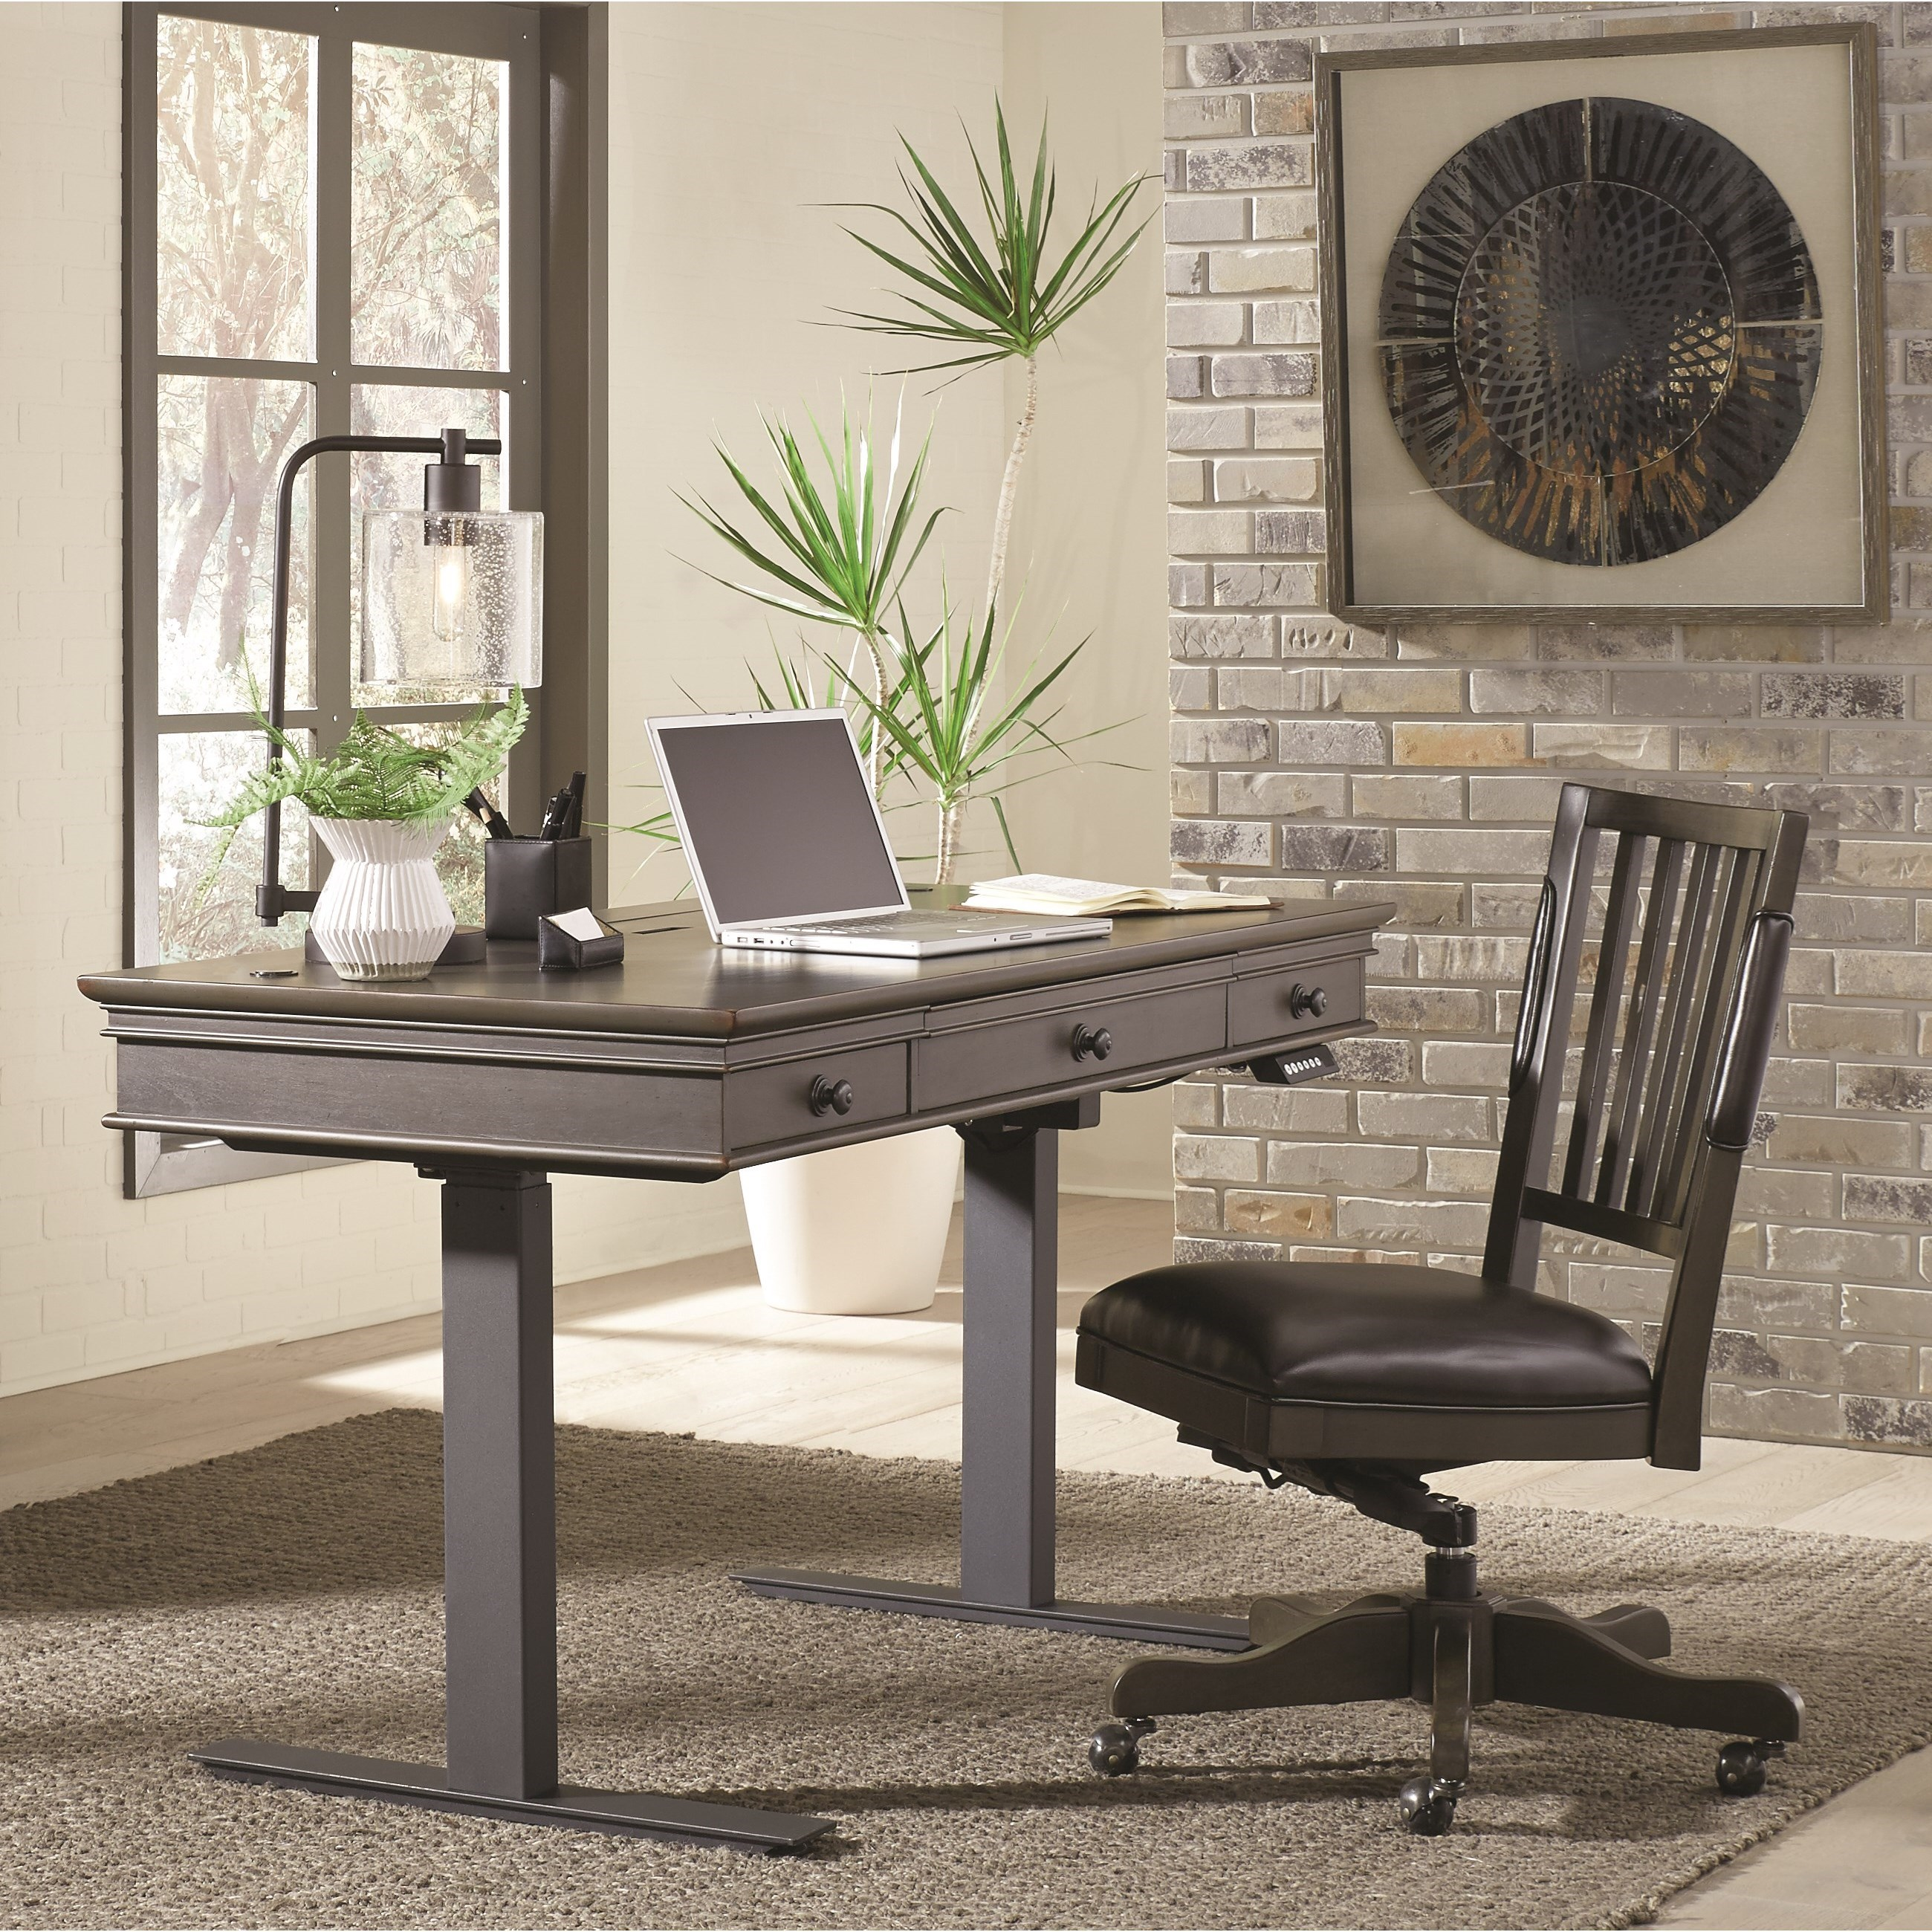 "Oxford 60"" Adjustable Desk by Aspenhome at Stoney Creek Furniture"